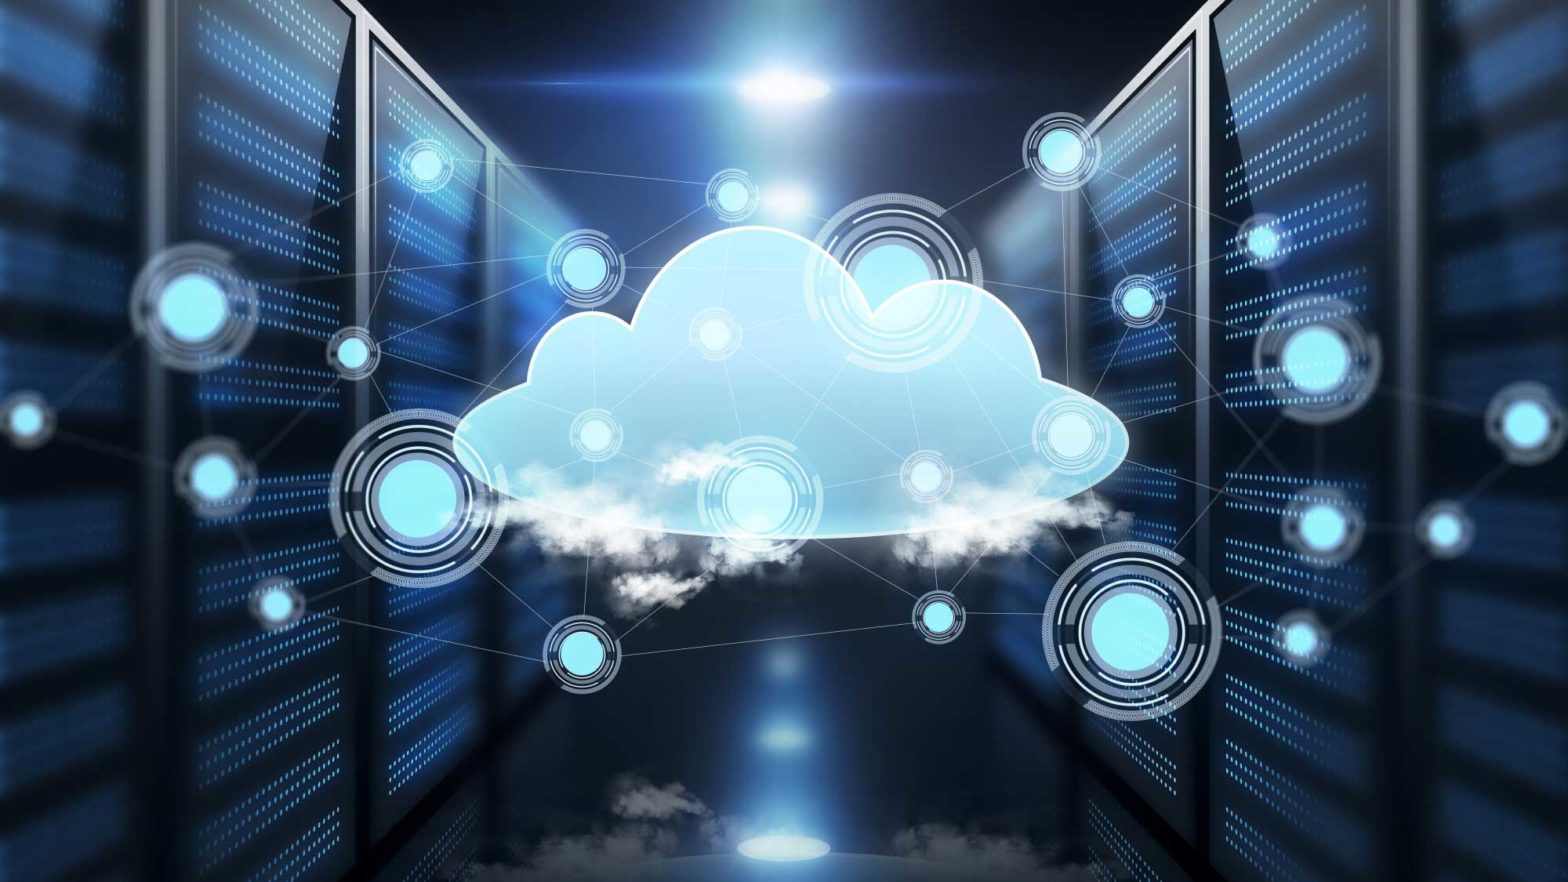 10 Benefits of Cloud Storage and How to Determine Your Storage Needs